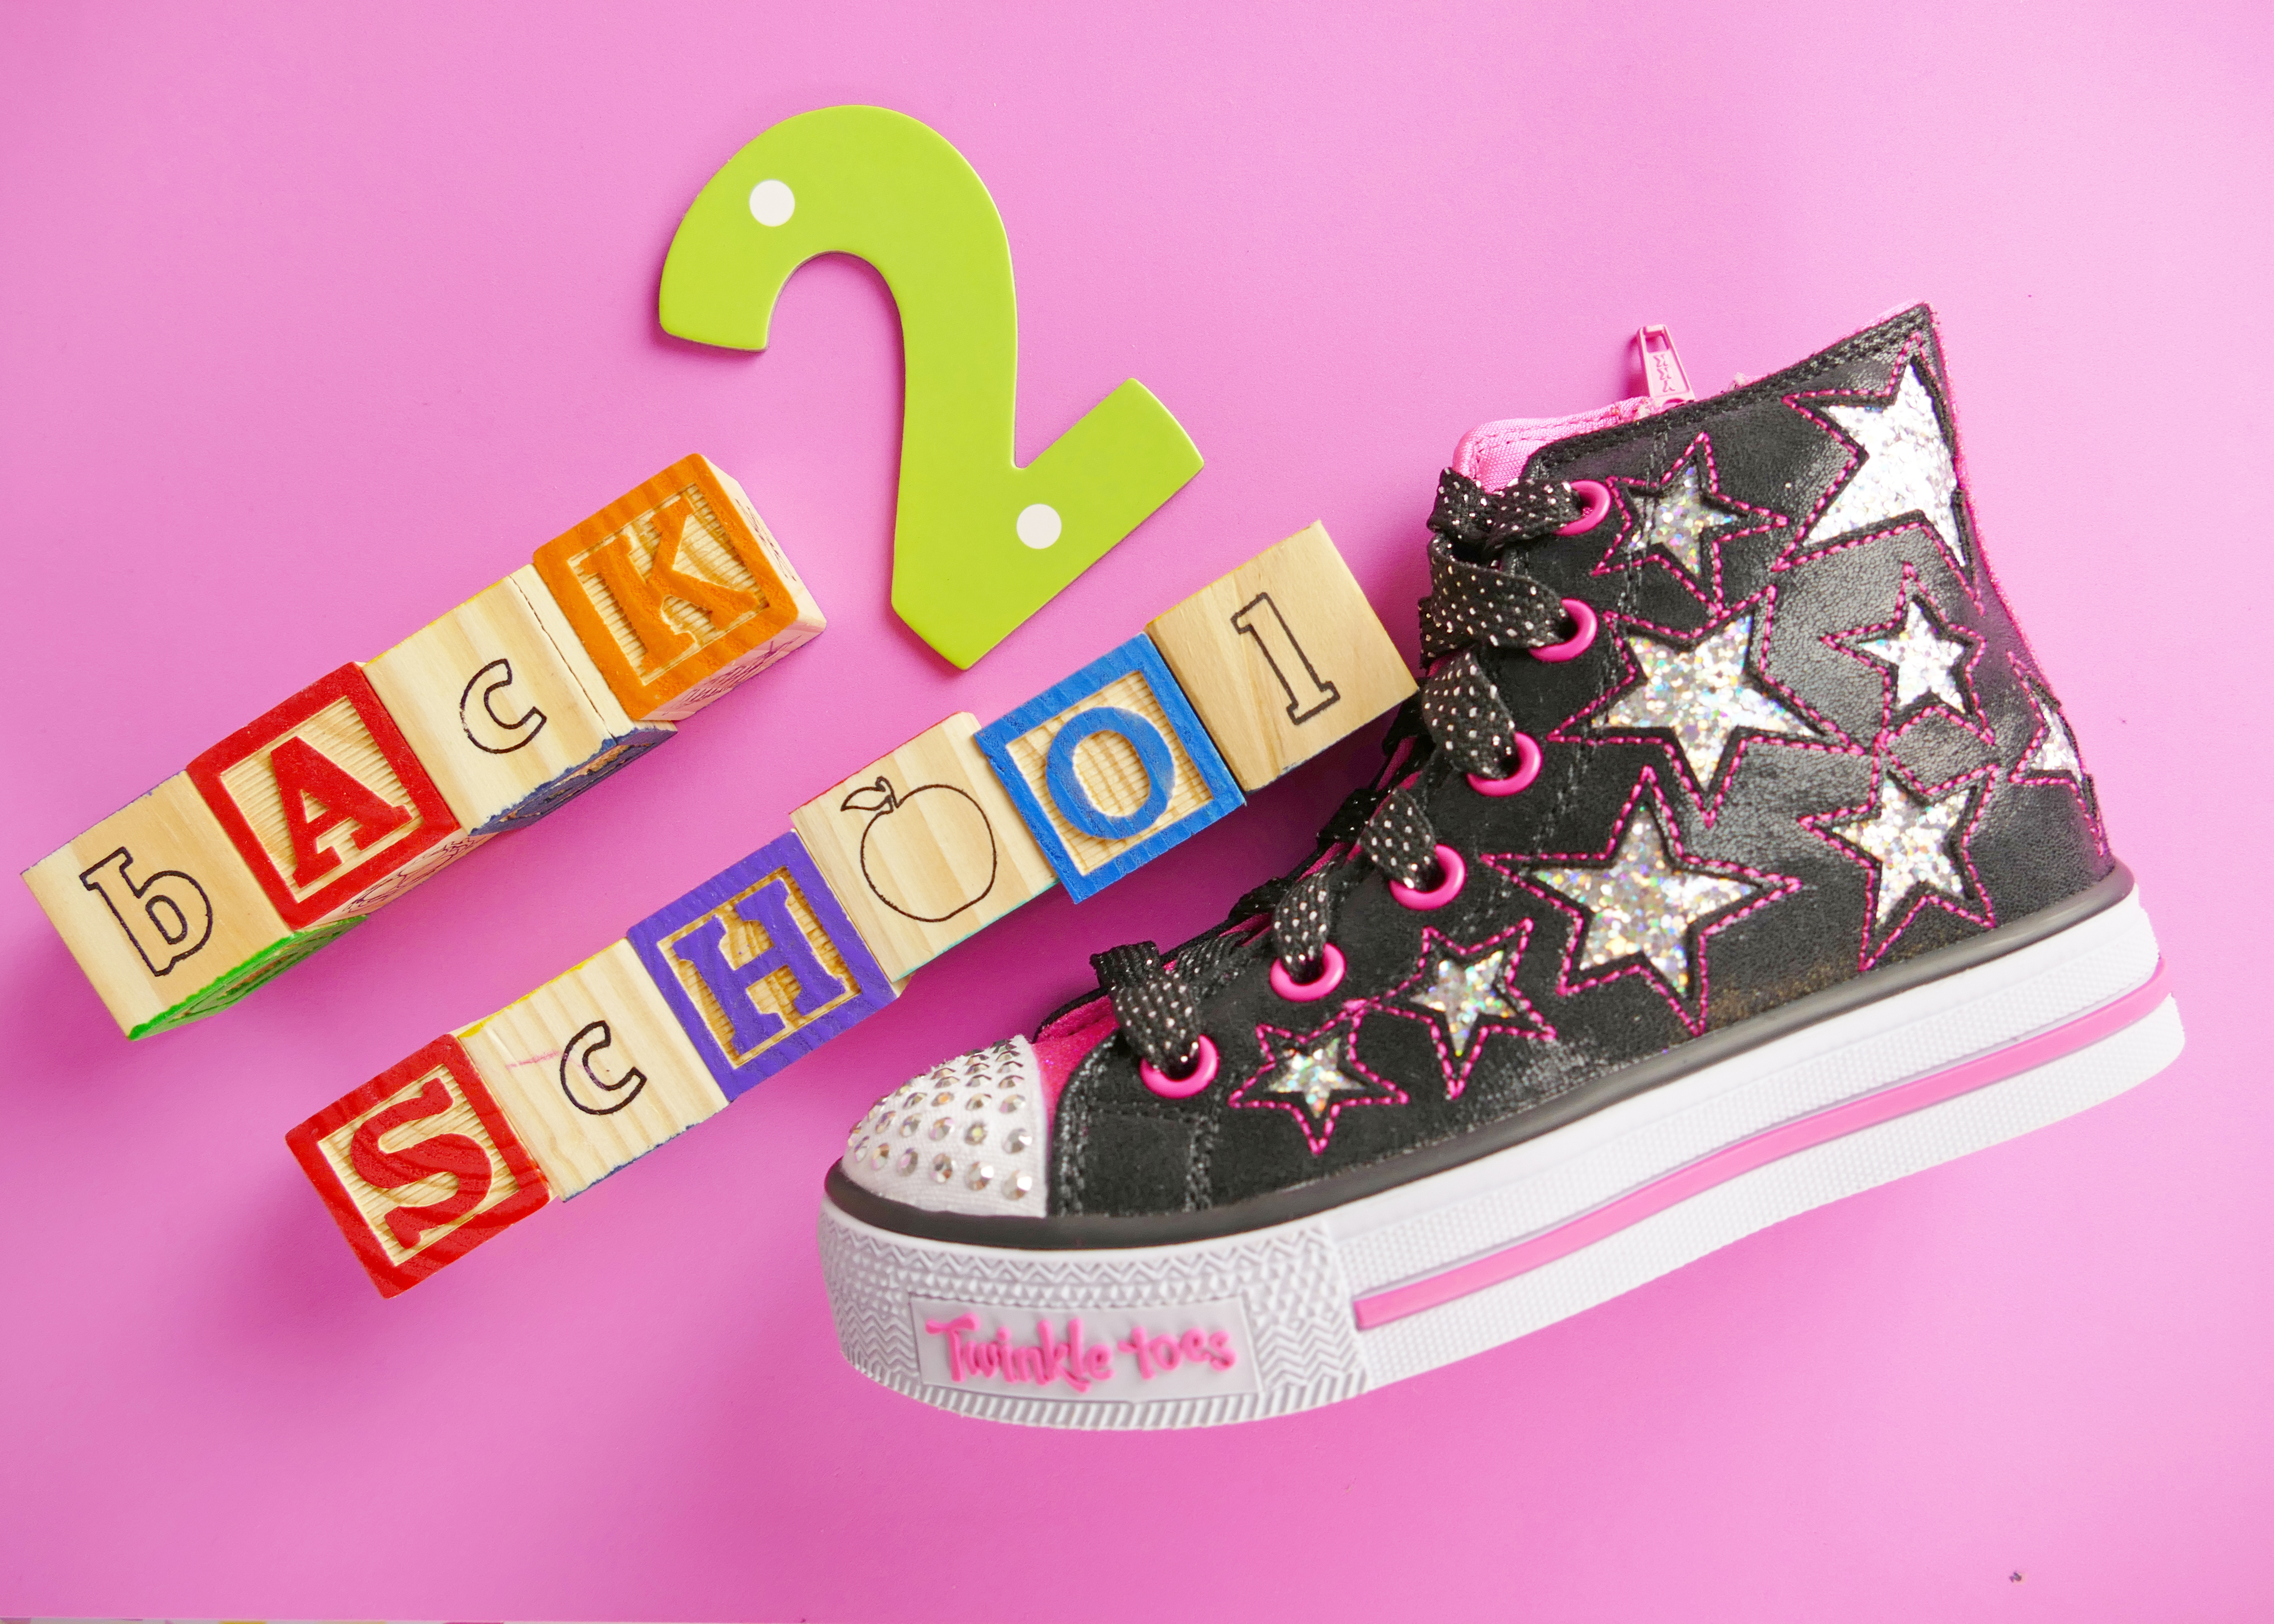 Twinkle Toes presents Shuffles u2013 Rockin Stars! This Twinkle Star showcases how to look glamourous in a light-up high-top with sequined star cutouts and ... & Kids | SKECHERS The Source azcodes.com